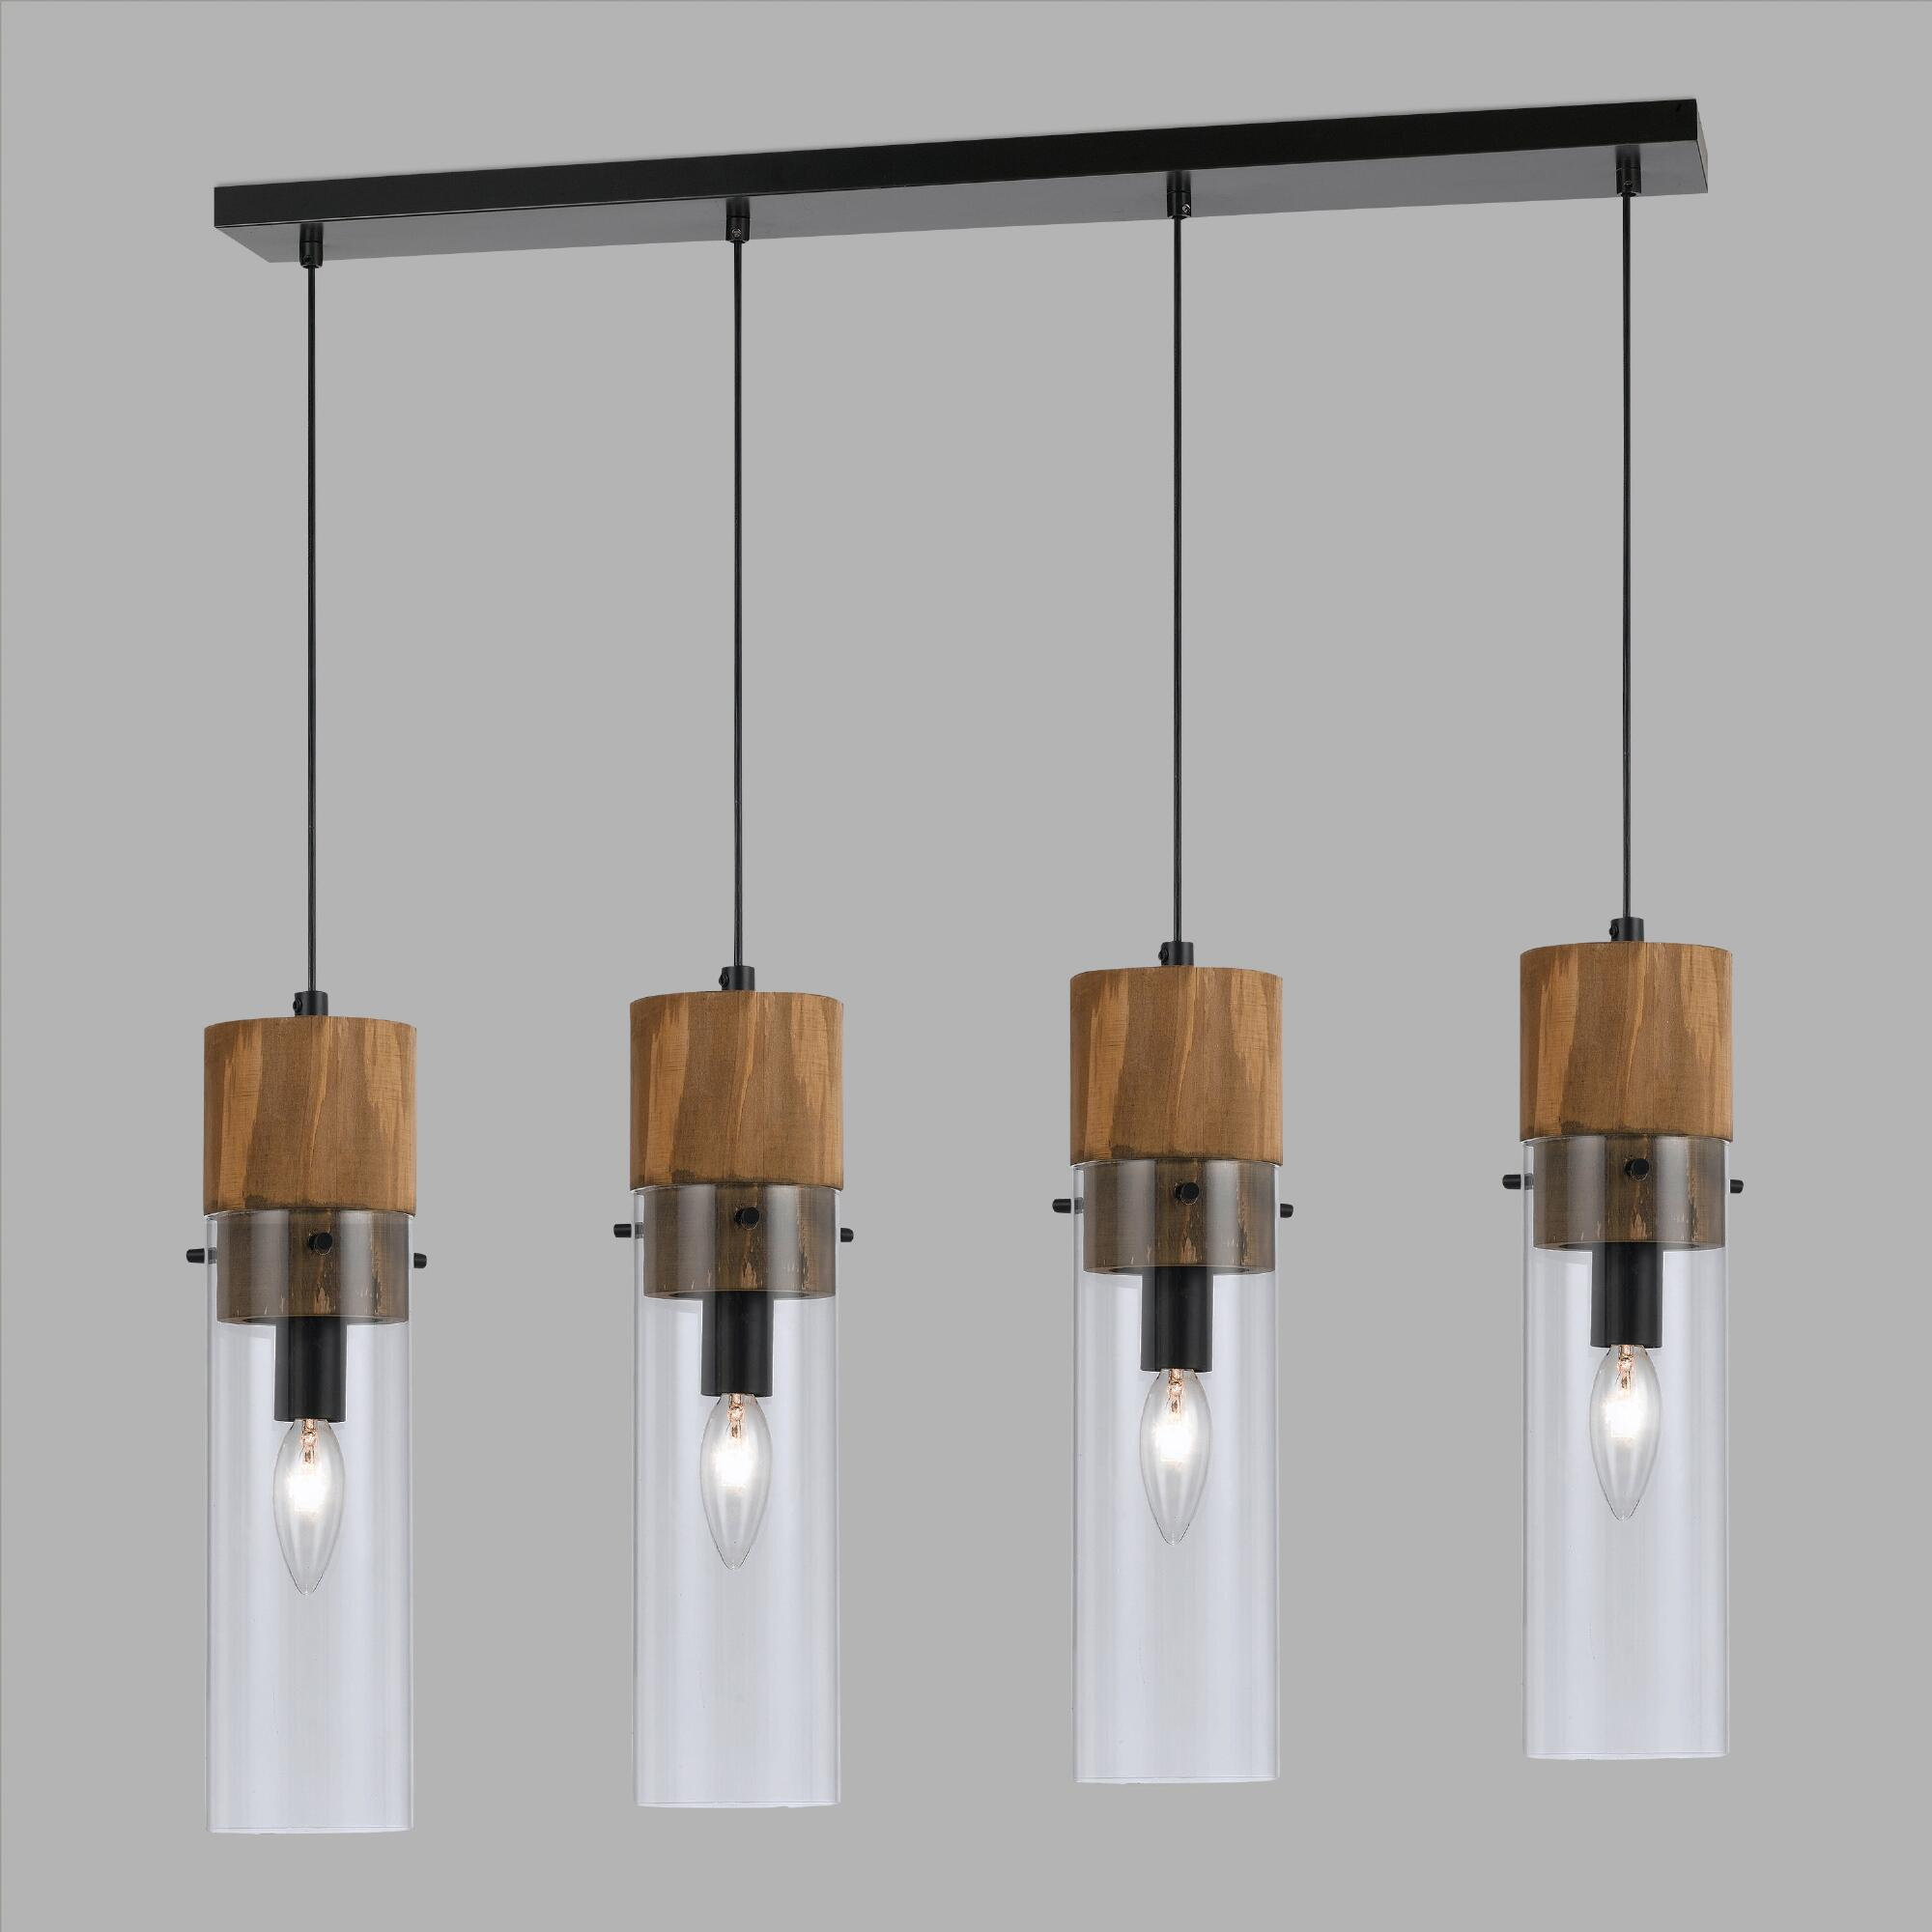 Wood And Glass 4-Light Pendant Lamp